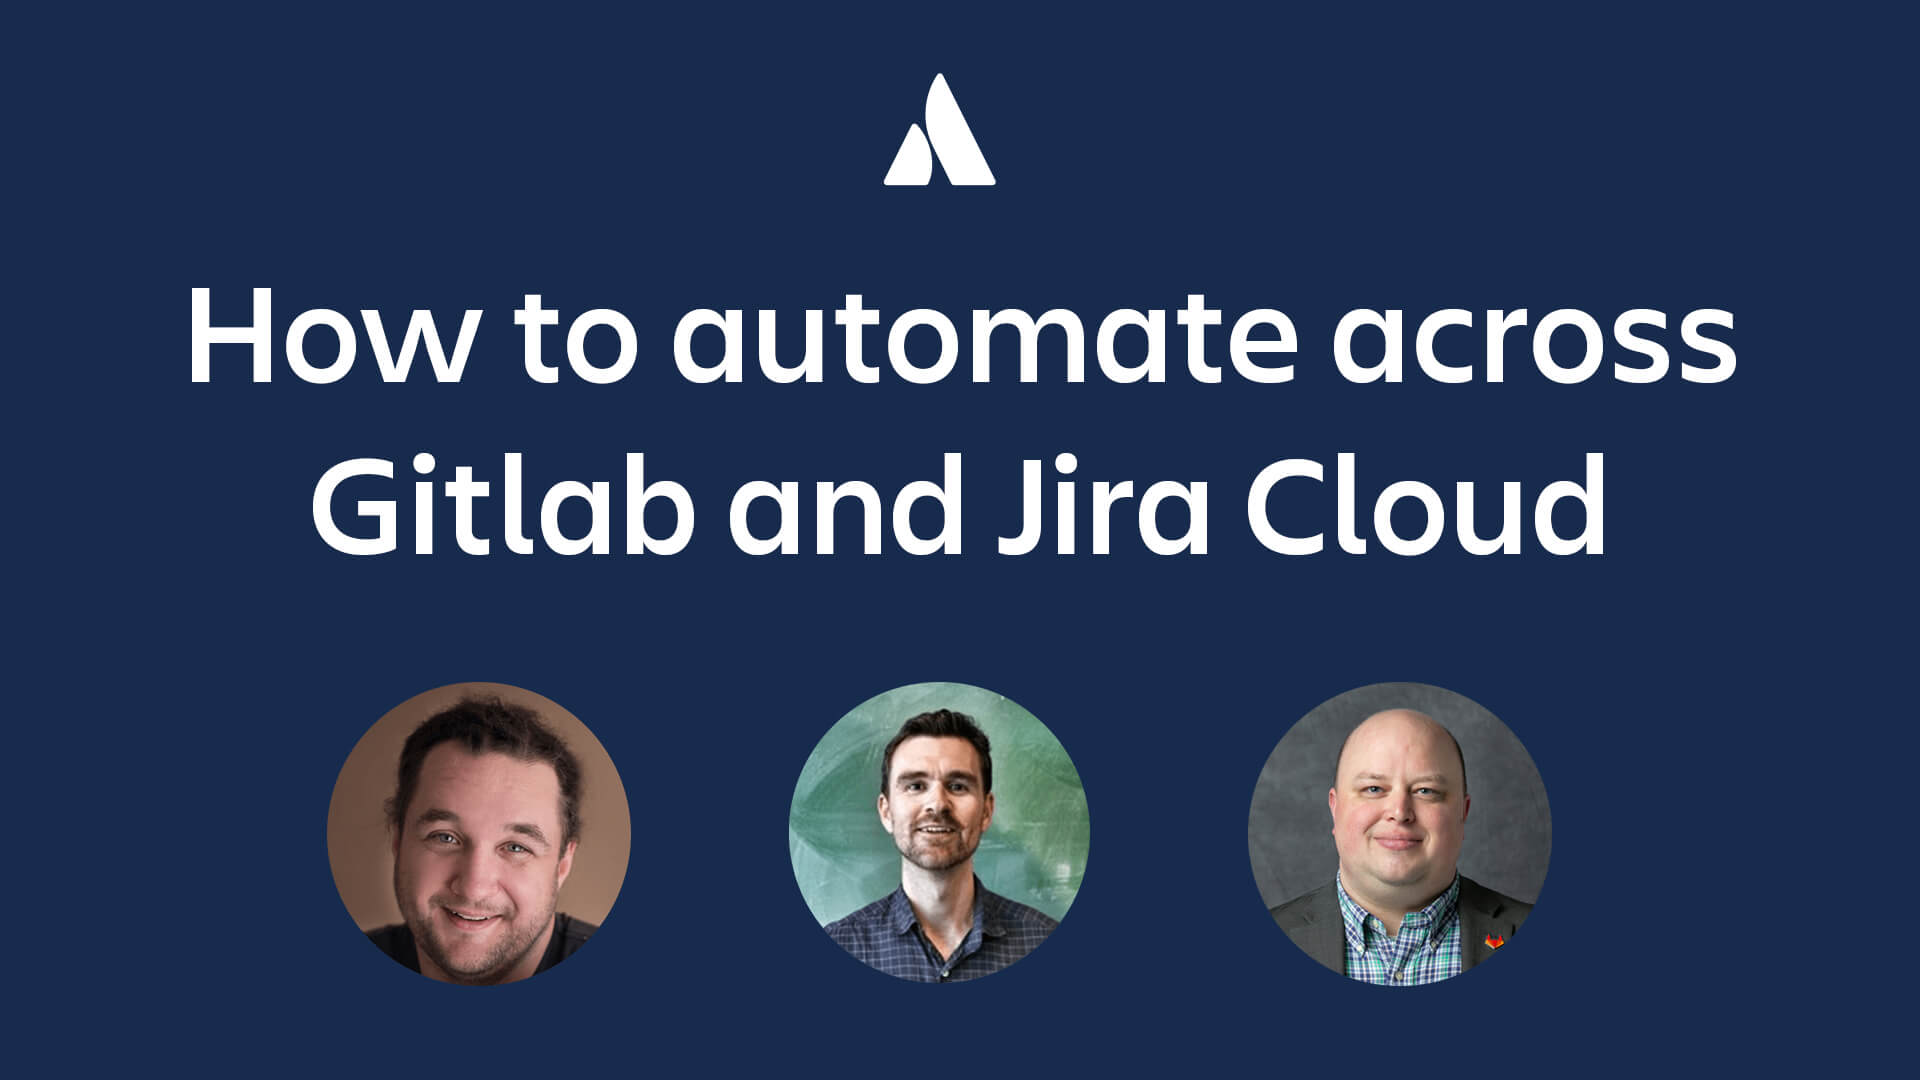 How to automate across gitlab and Jira Cloud